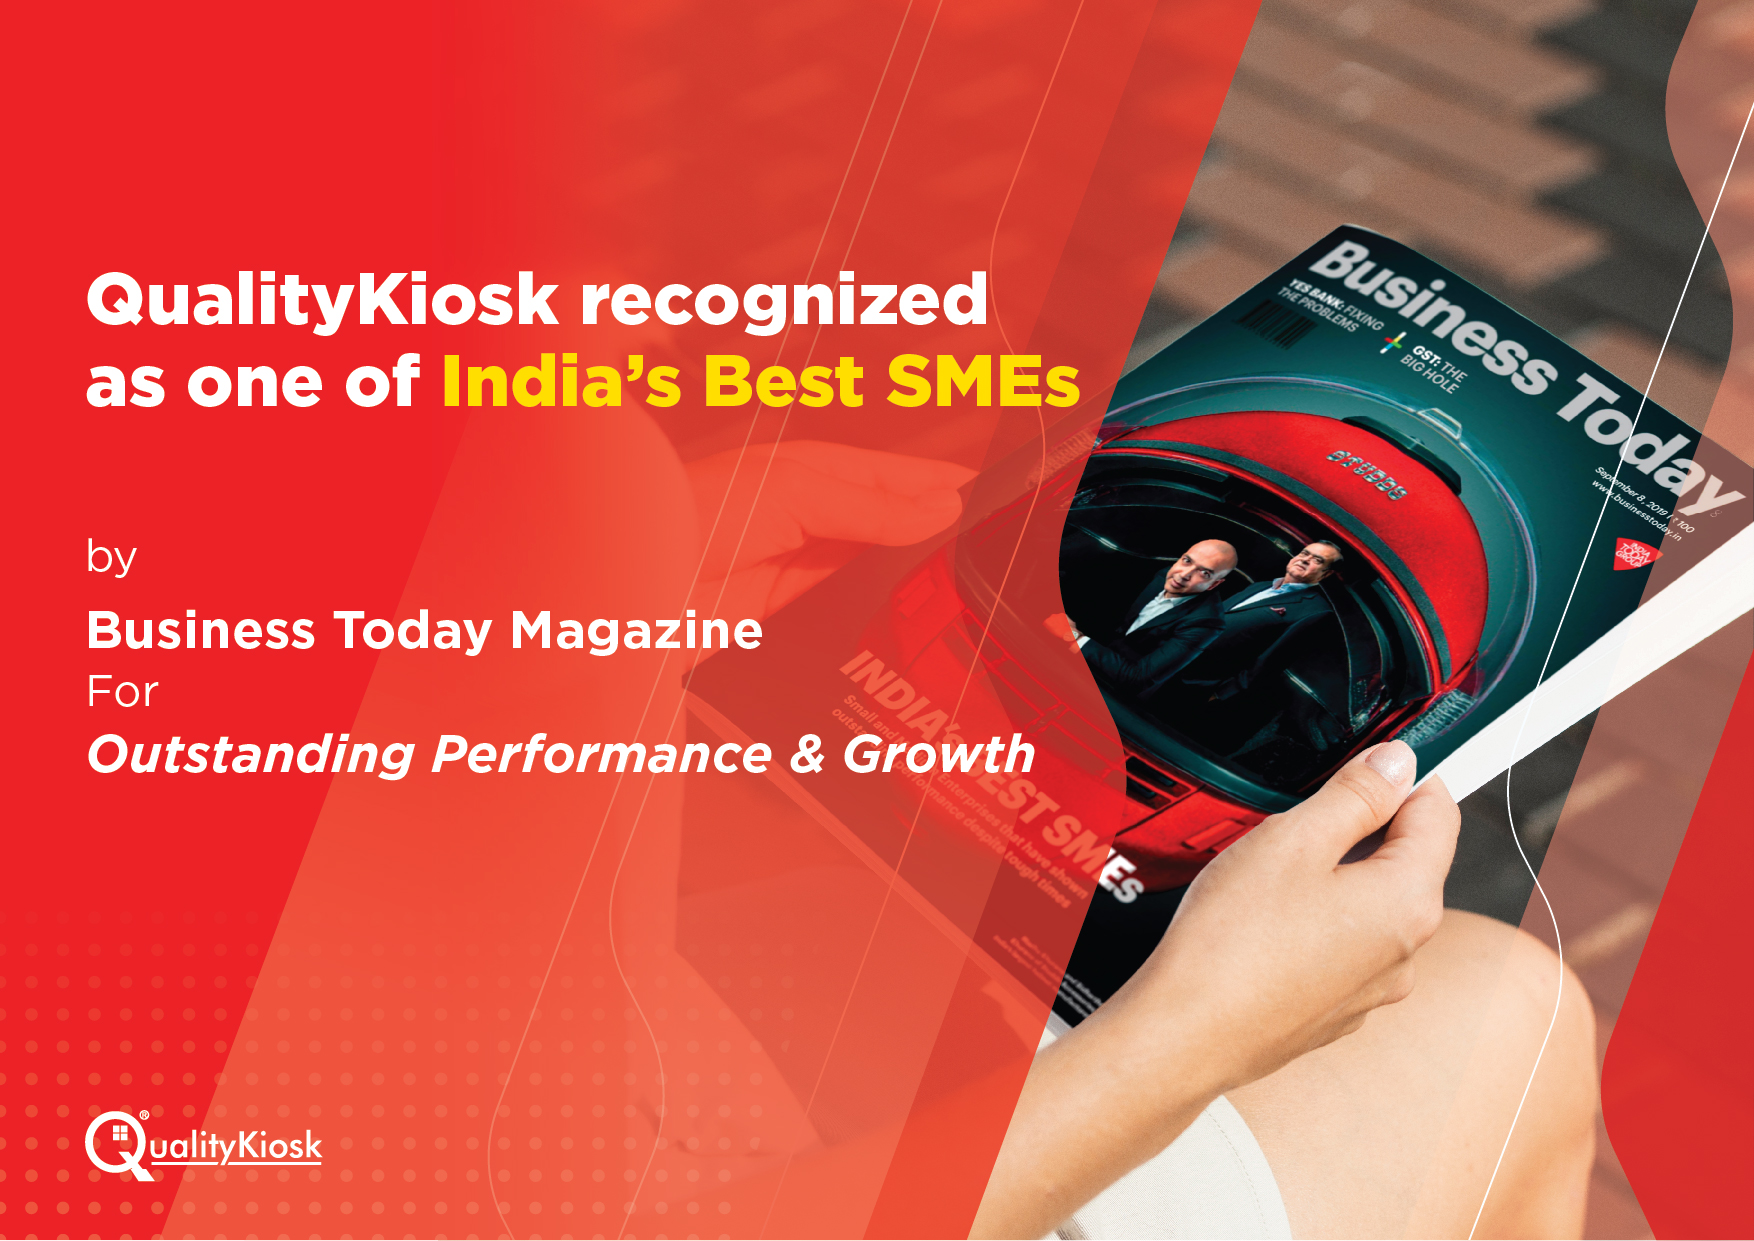 QualityKiosk Recognized as One of India's Best SMEs by Business Today!